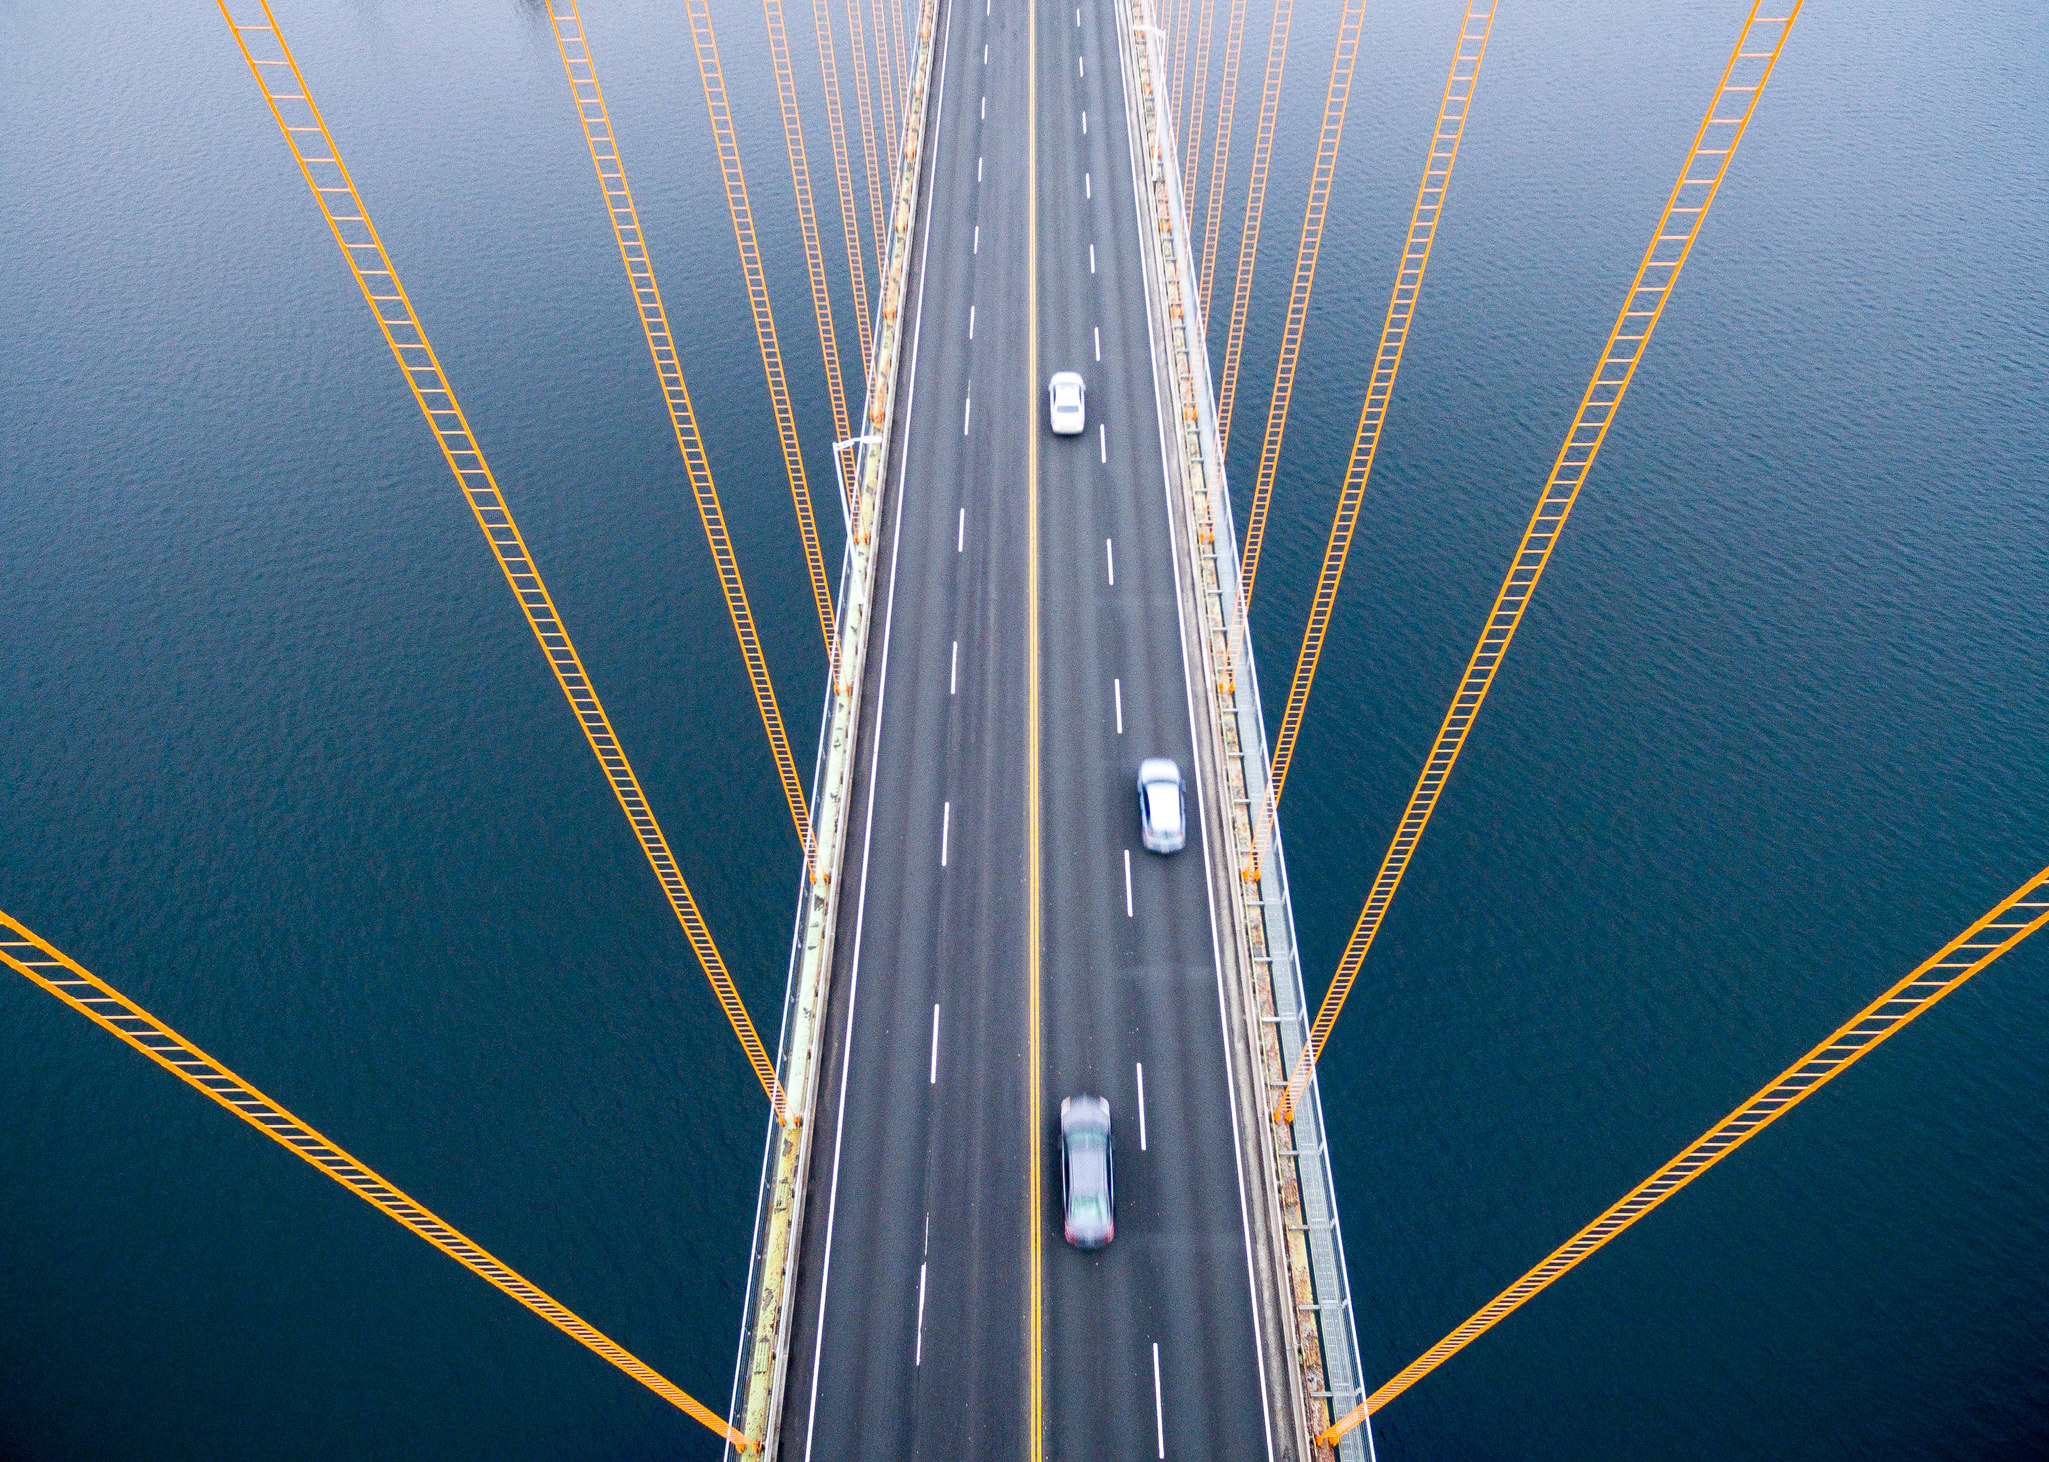 An above-head view of a long bridge with cars driving over it